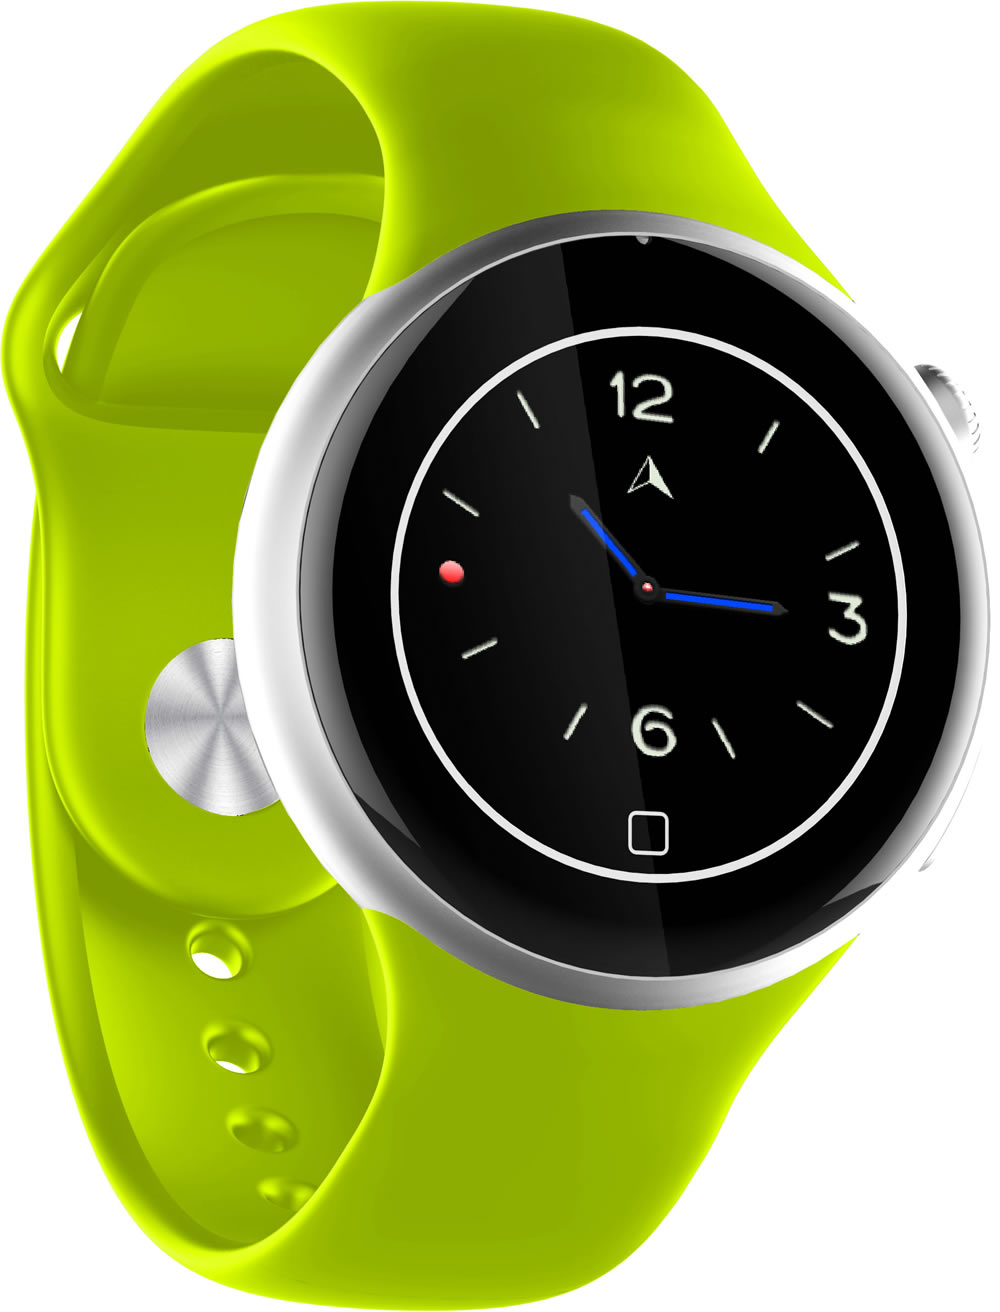 Heart Rate Tracker smart watch C5 Waterproof WristWatch Sport Pedometer Smartwatch for IOS Android Smartphone with SIM Watches